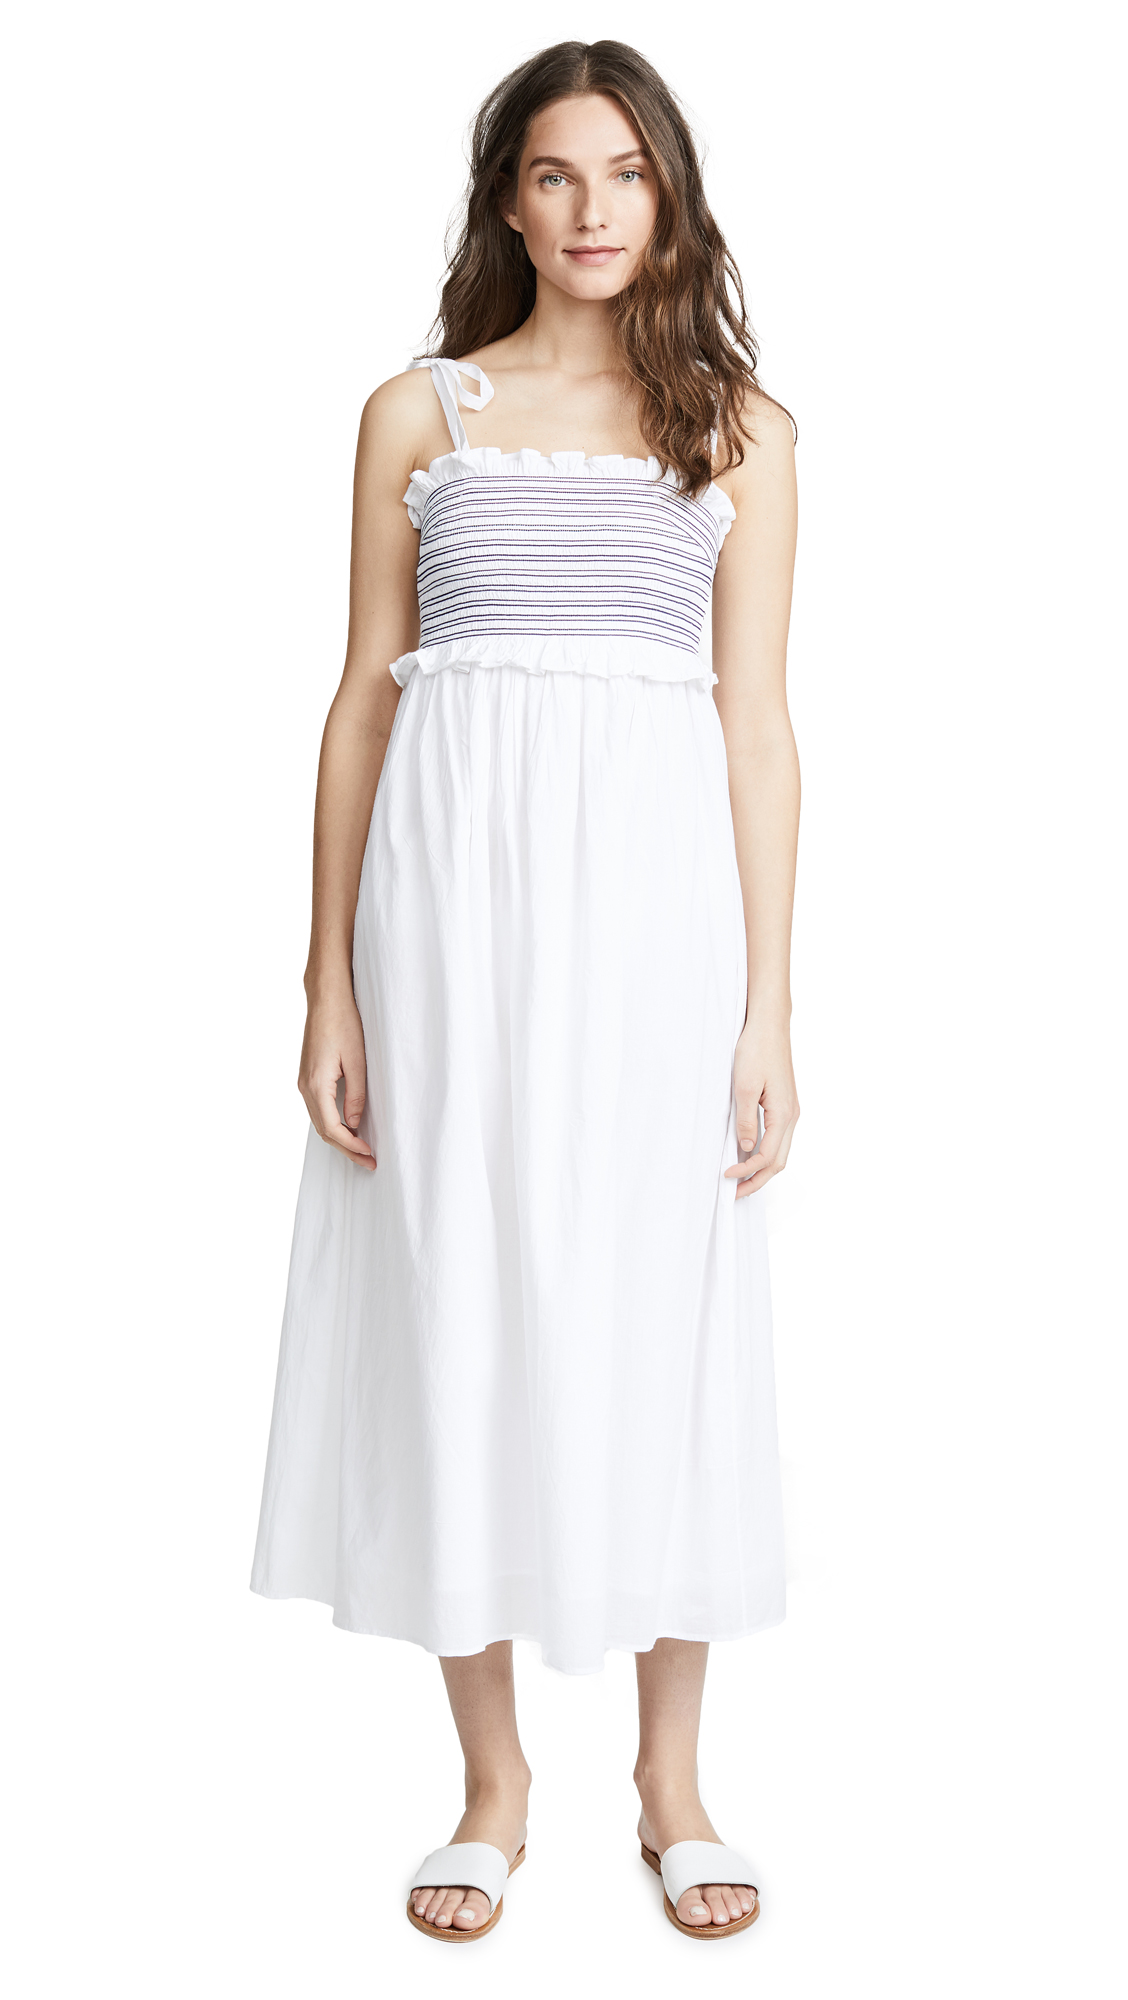 Kos Resort Maxi Dress